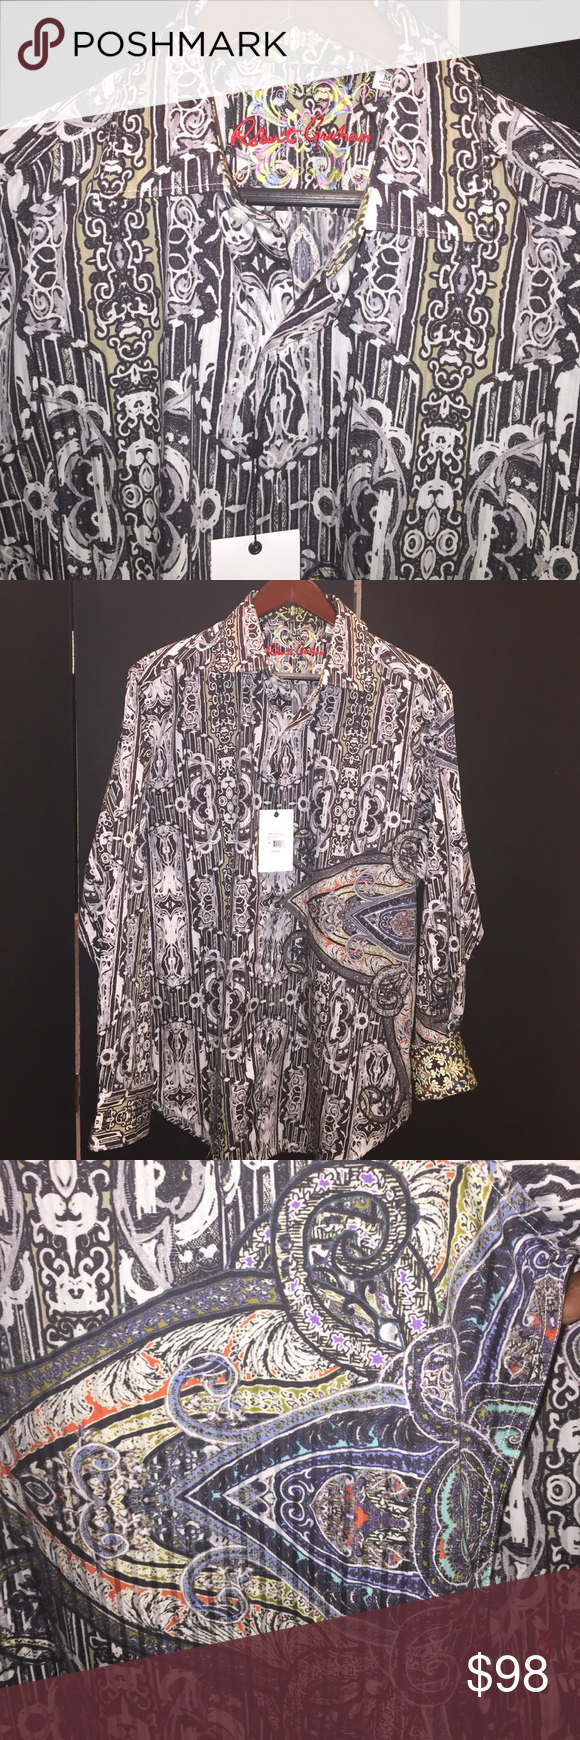 """Robert  Graham """"Knowledge Truth Wisdom"""" Robert Graham """"Knowledge Truth Wisdom' 100% Woven Cotton Multi- color print.  Button down with fold down collar and fold Cuff. Robert Graham Other"""